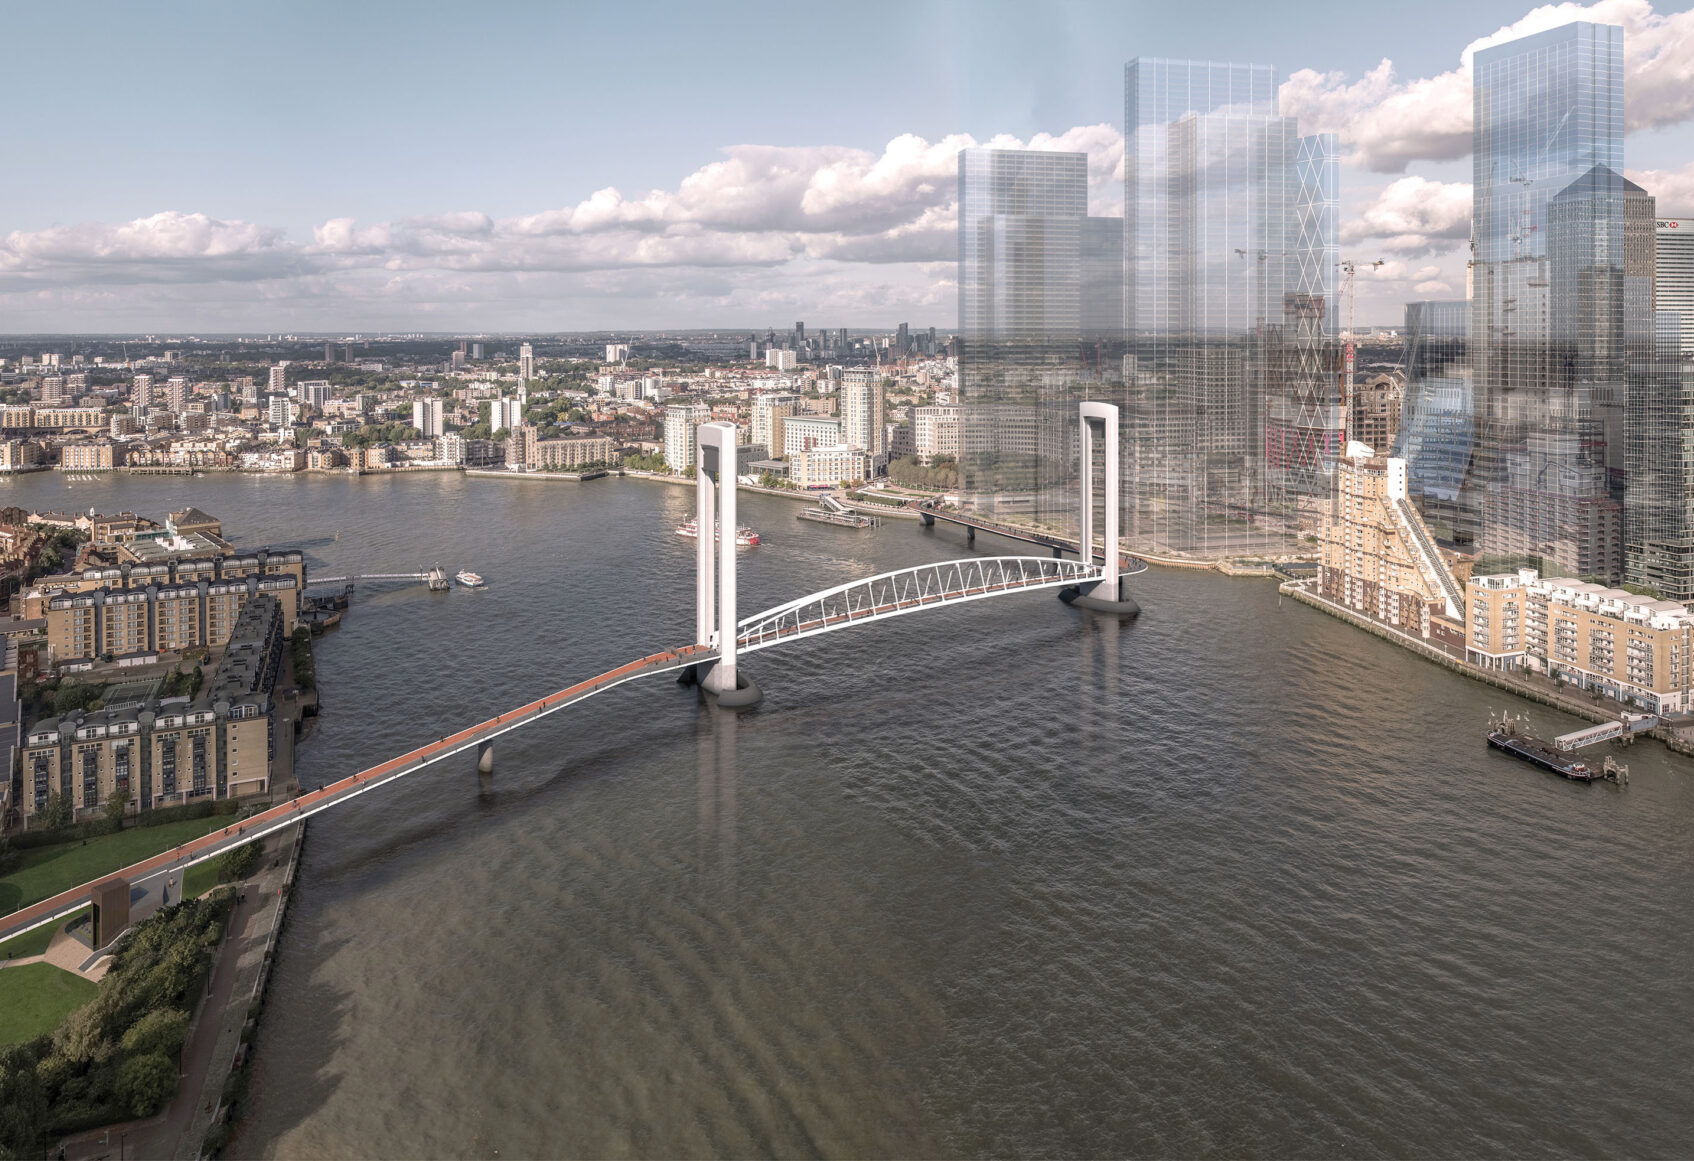 Large lifting Bridge in Canary Wharf over River Thames